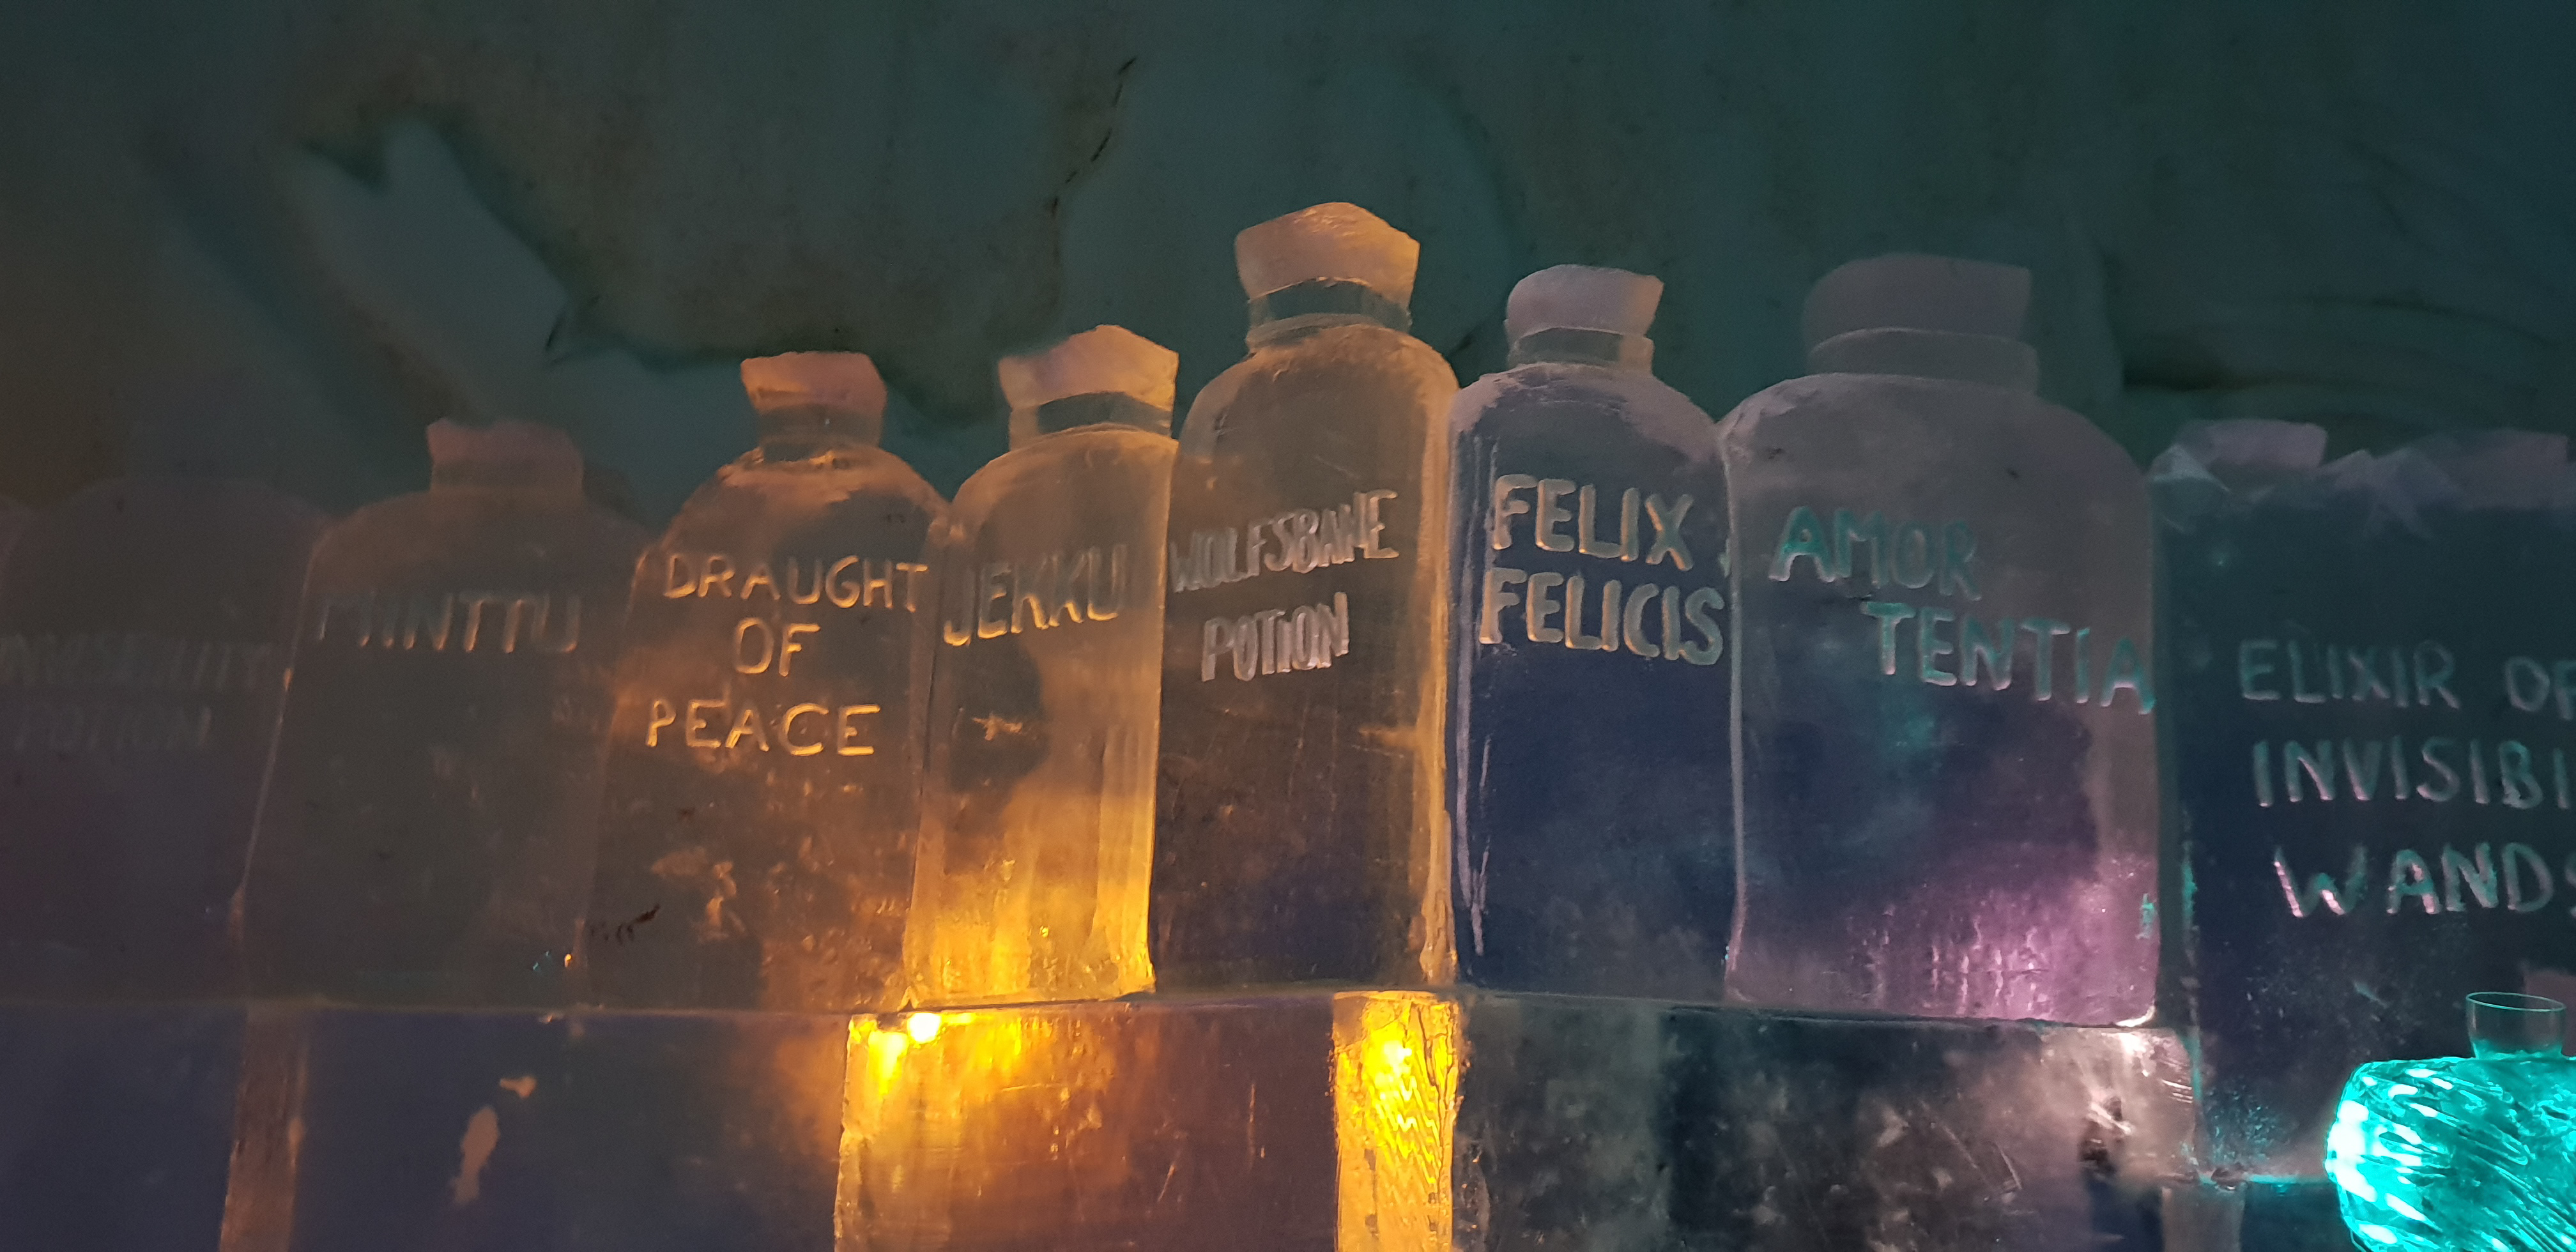 """The Ice Bar contains several potions, which will be familiar to """"Potter"""" fans."""